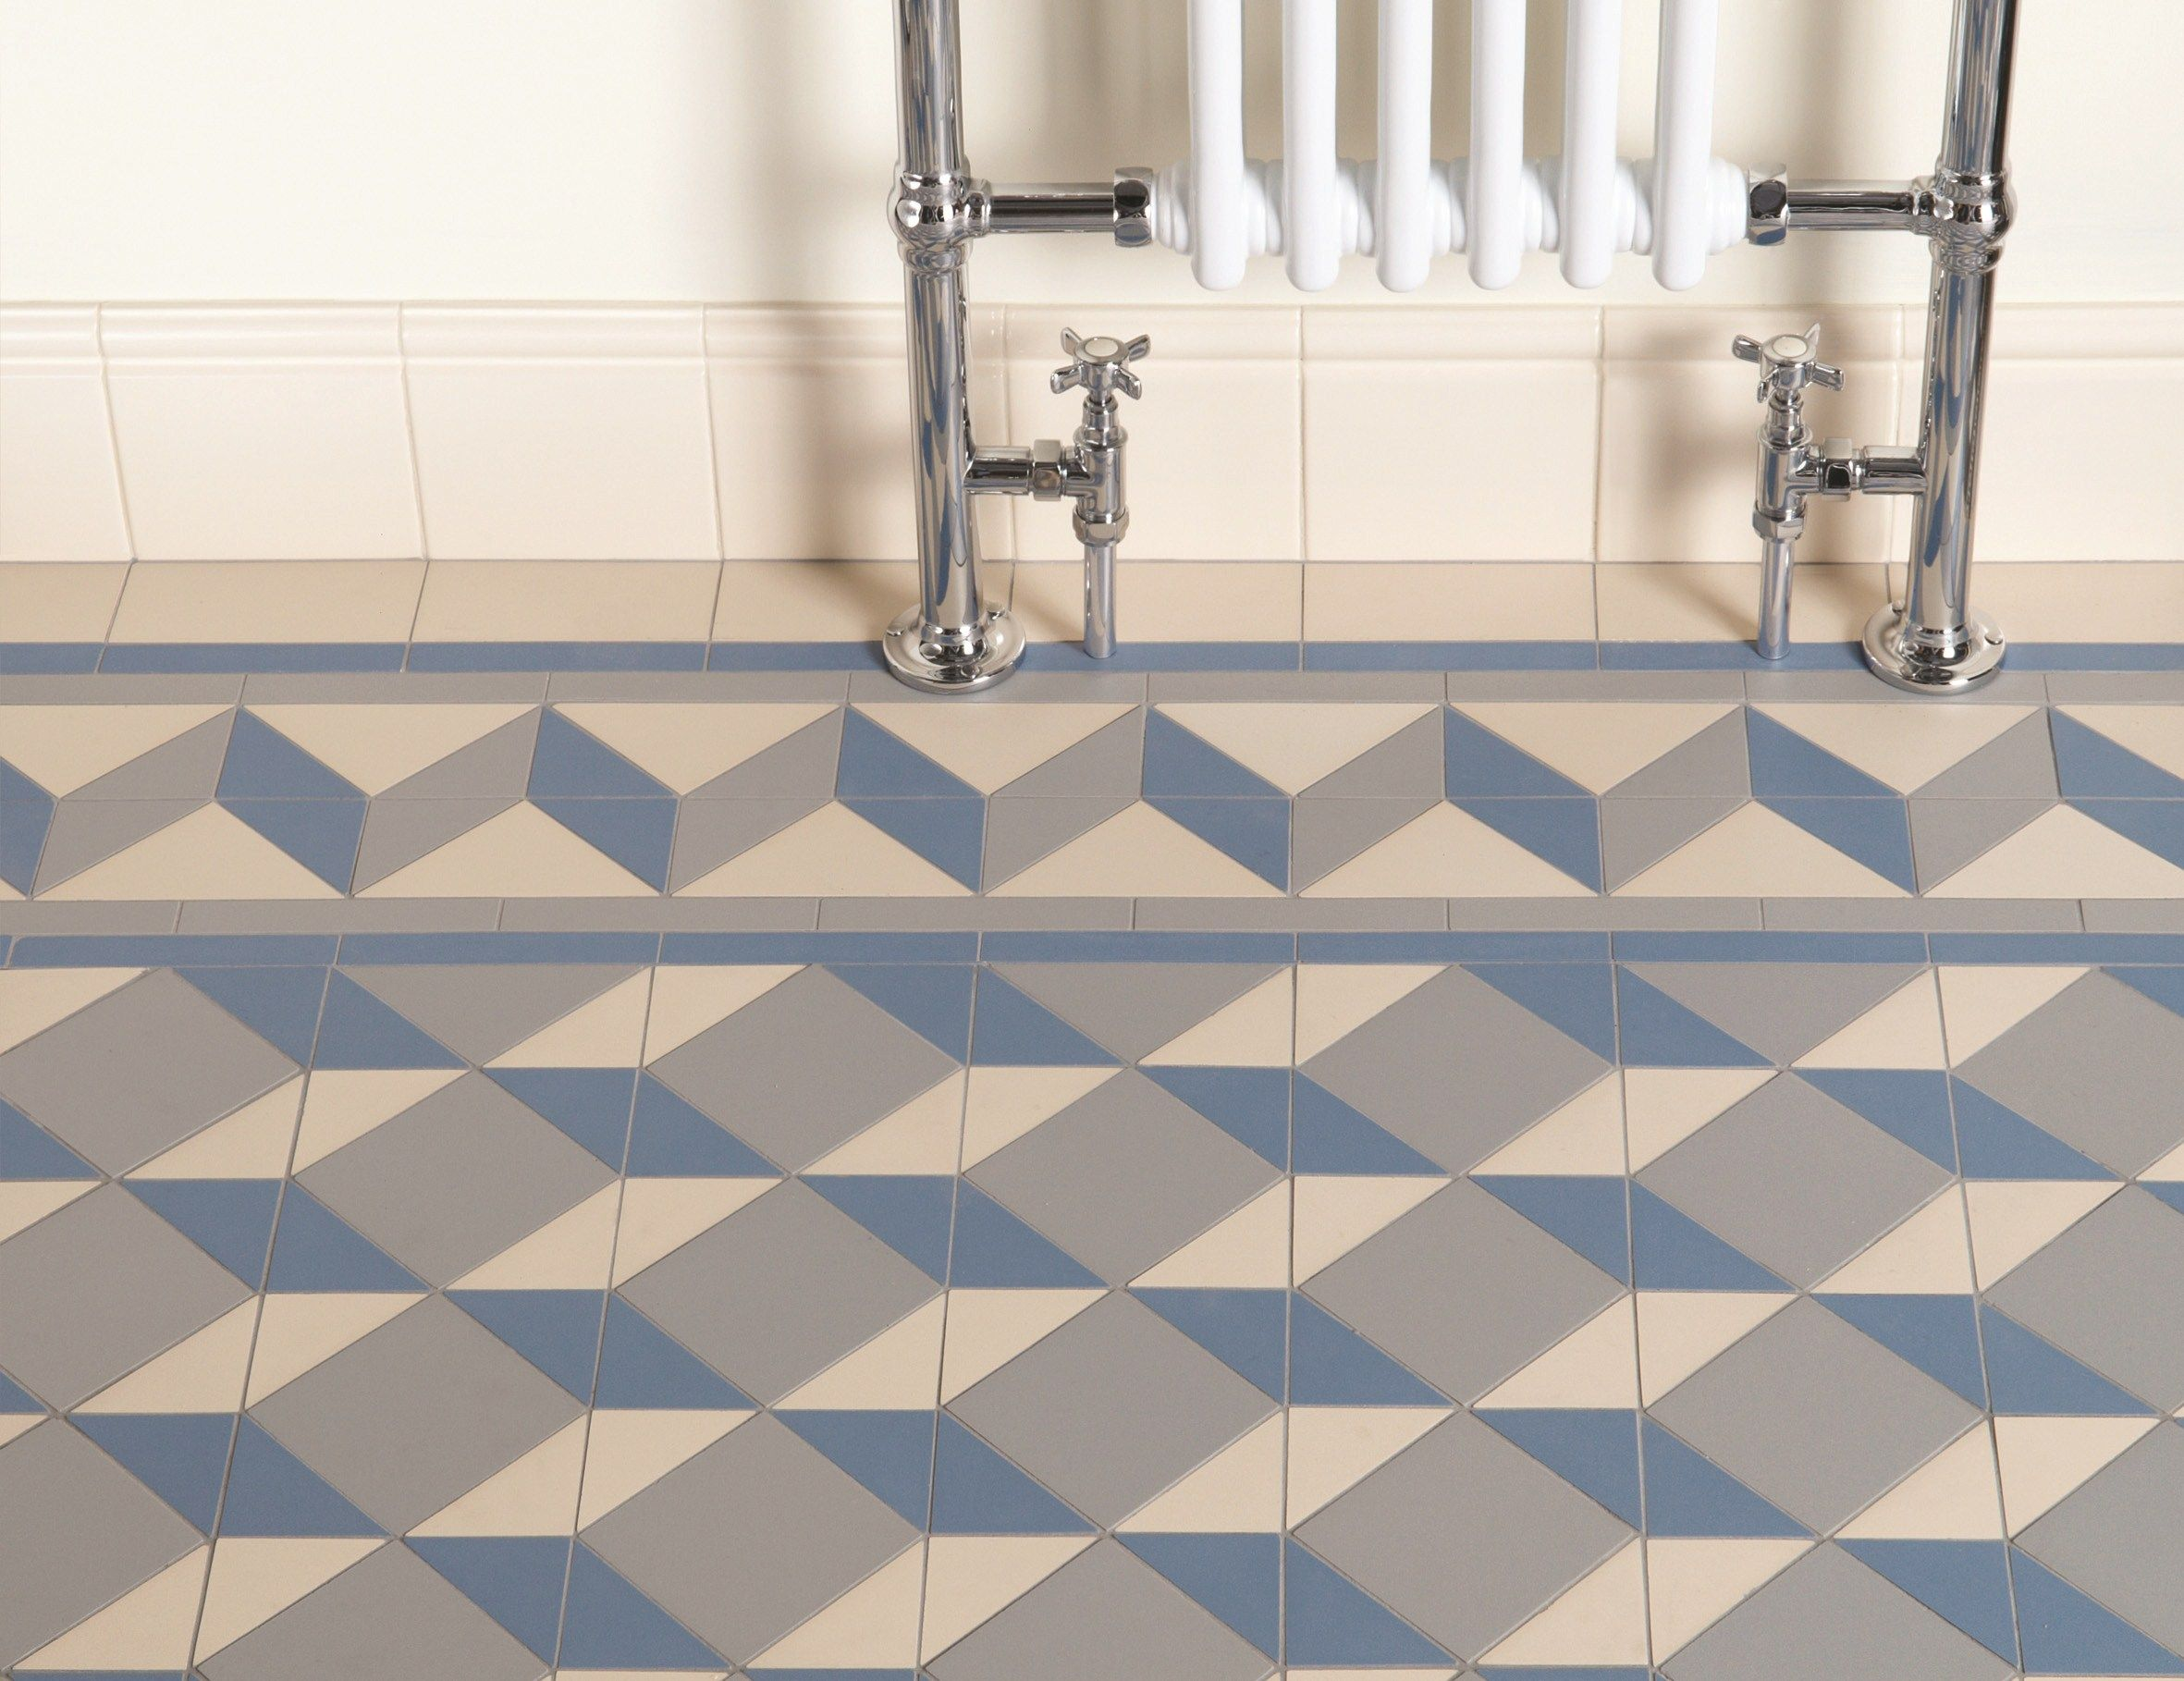 Victorian Floor Tiles Individual Shapes Make Up This Blue And Grey Art Deco Style Pattern